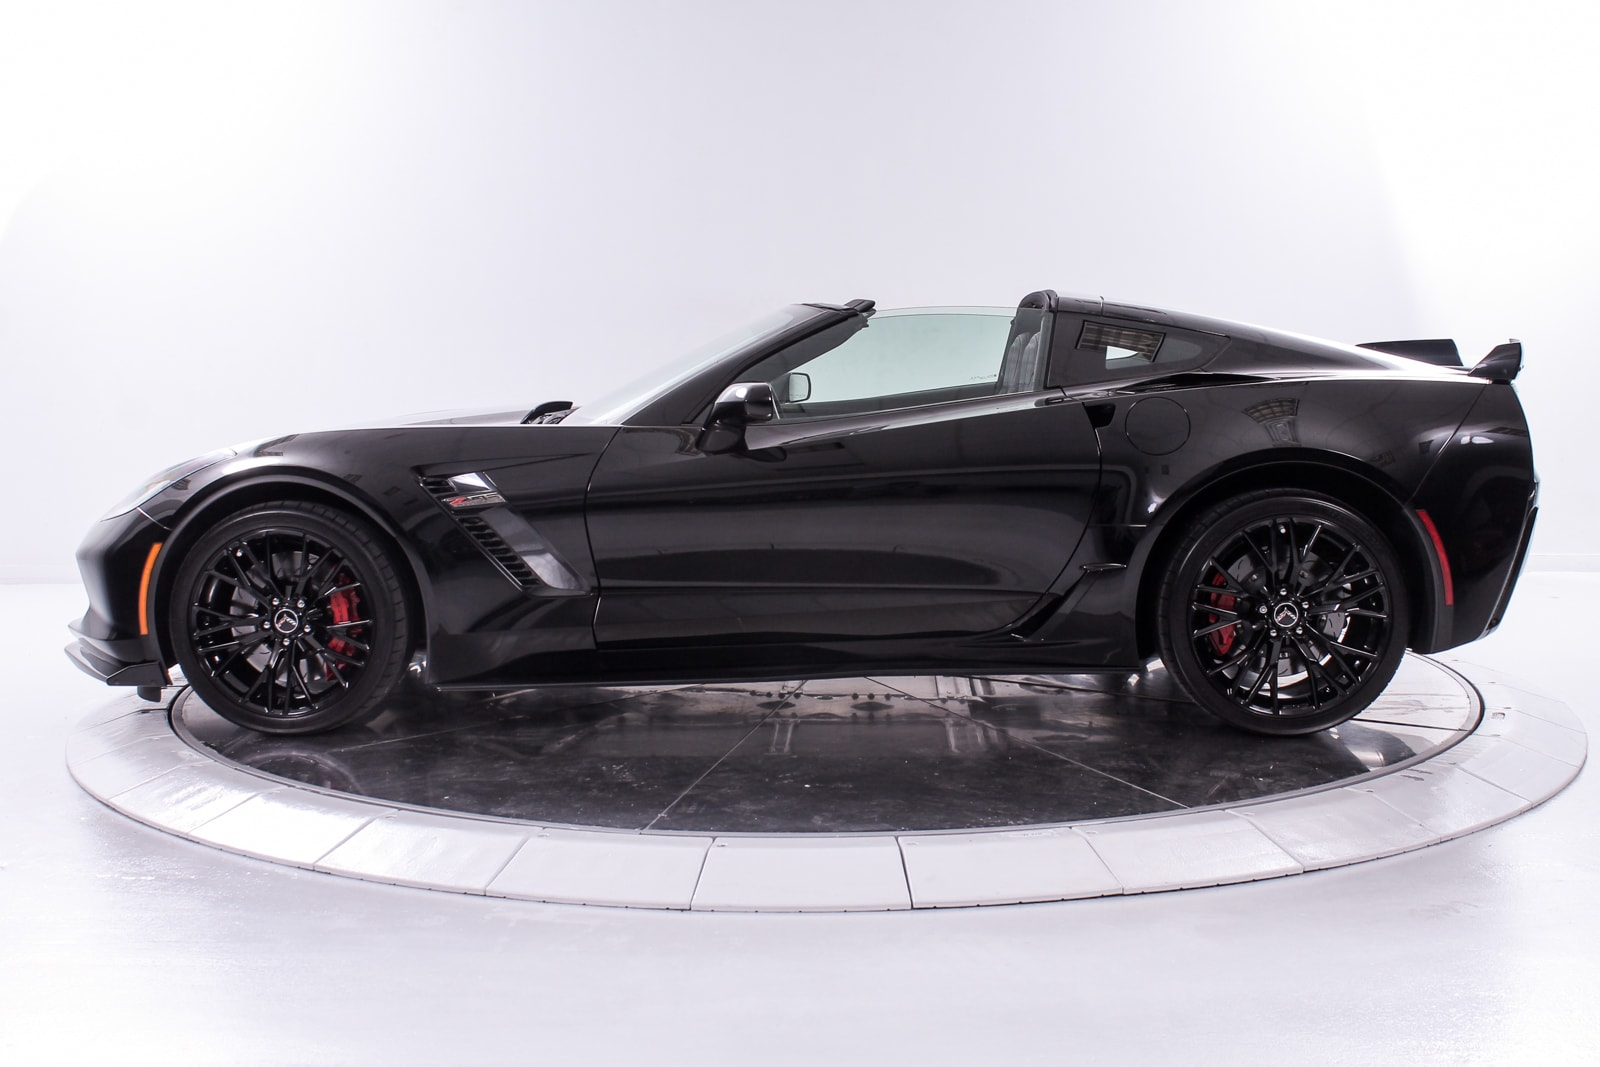 used 2015 chevrolet corvette z06 for sale plainview near long island ny vin 1g1ys2d62f5604323. Black Bedroom Furniture Sets. Home Design Ideas